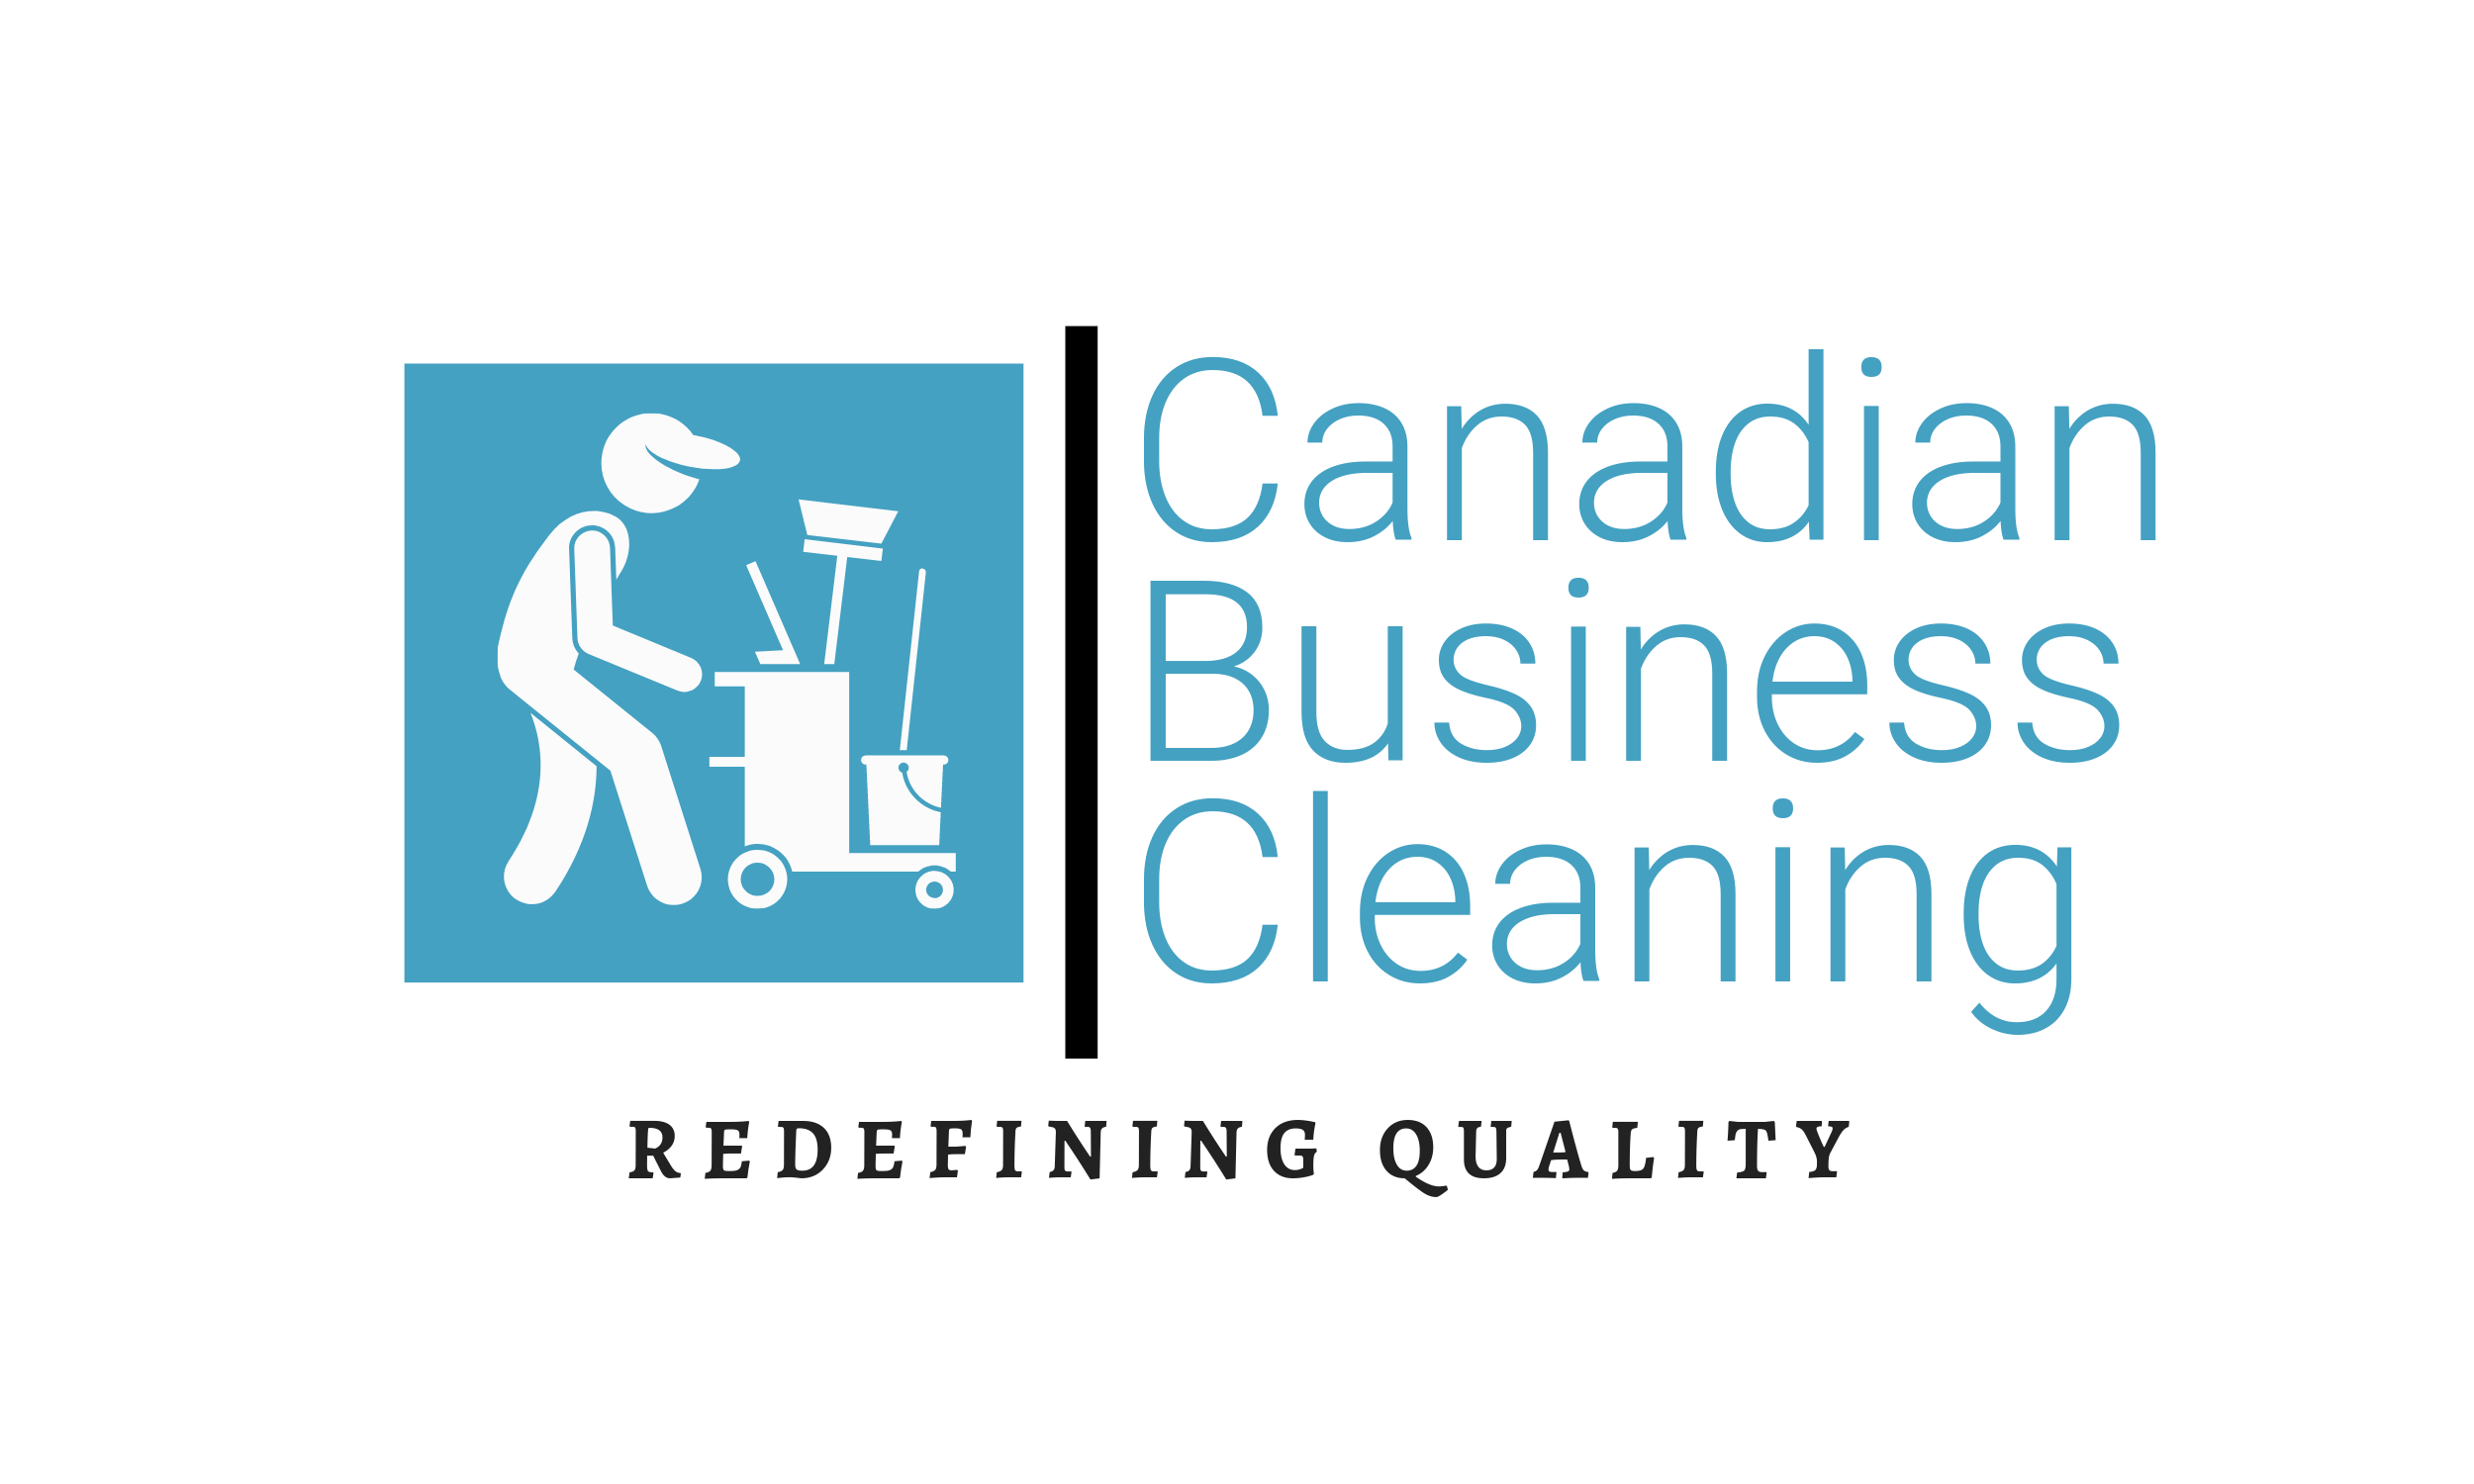 Canadian Business Cleaning Logo